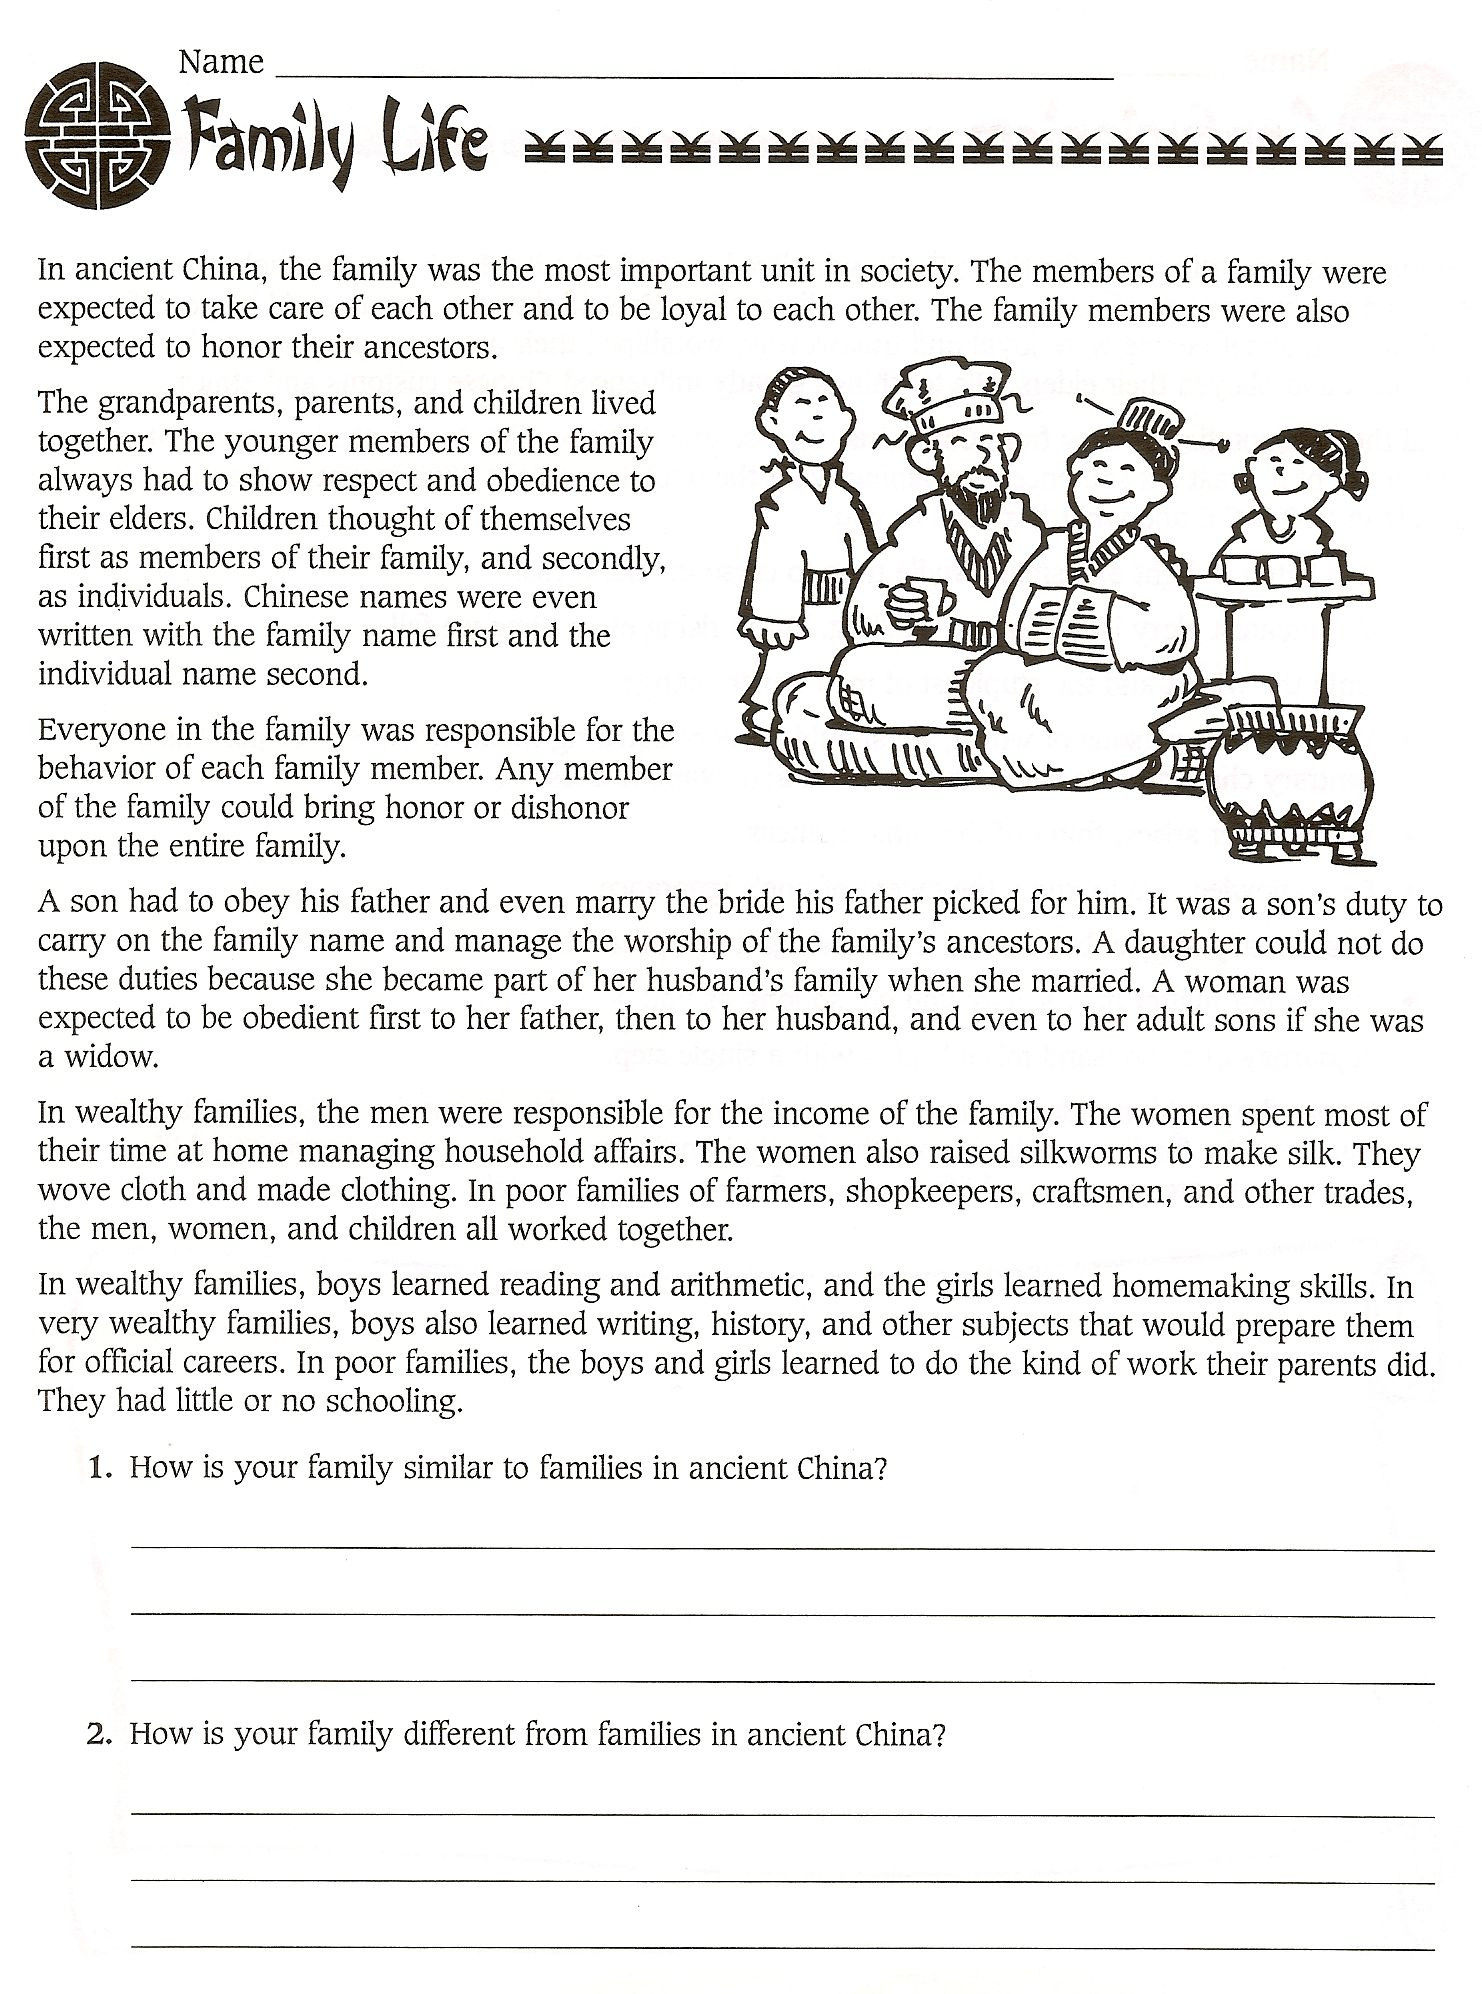 Geography Worksheets Middle School Pdf Grade 8 Mathematics May and Might Worksheets with Answers